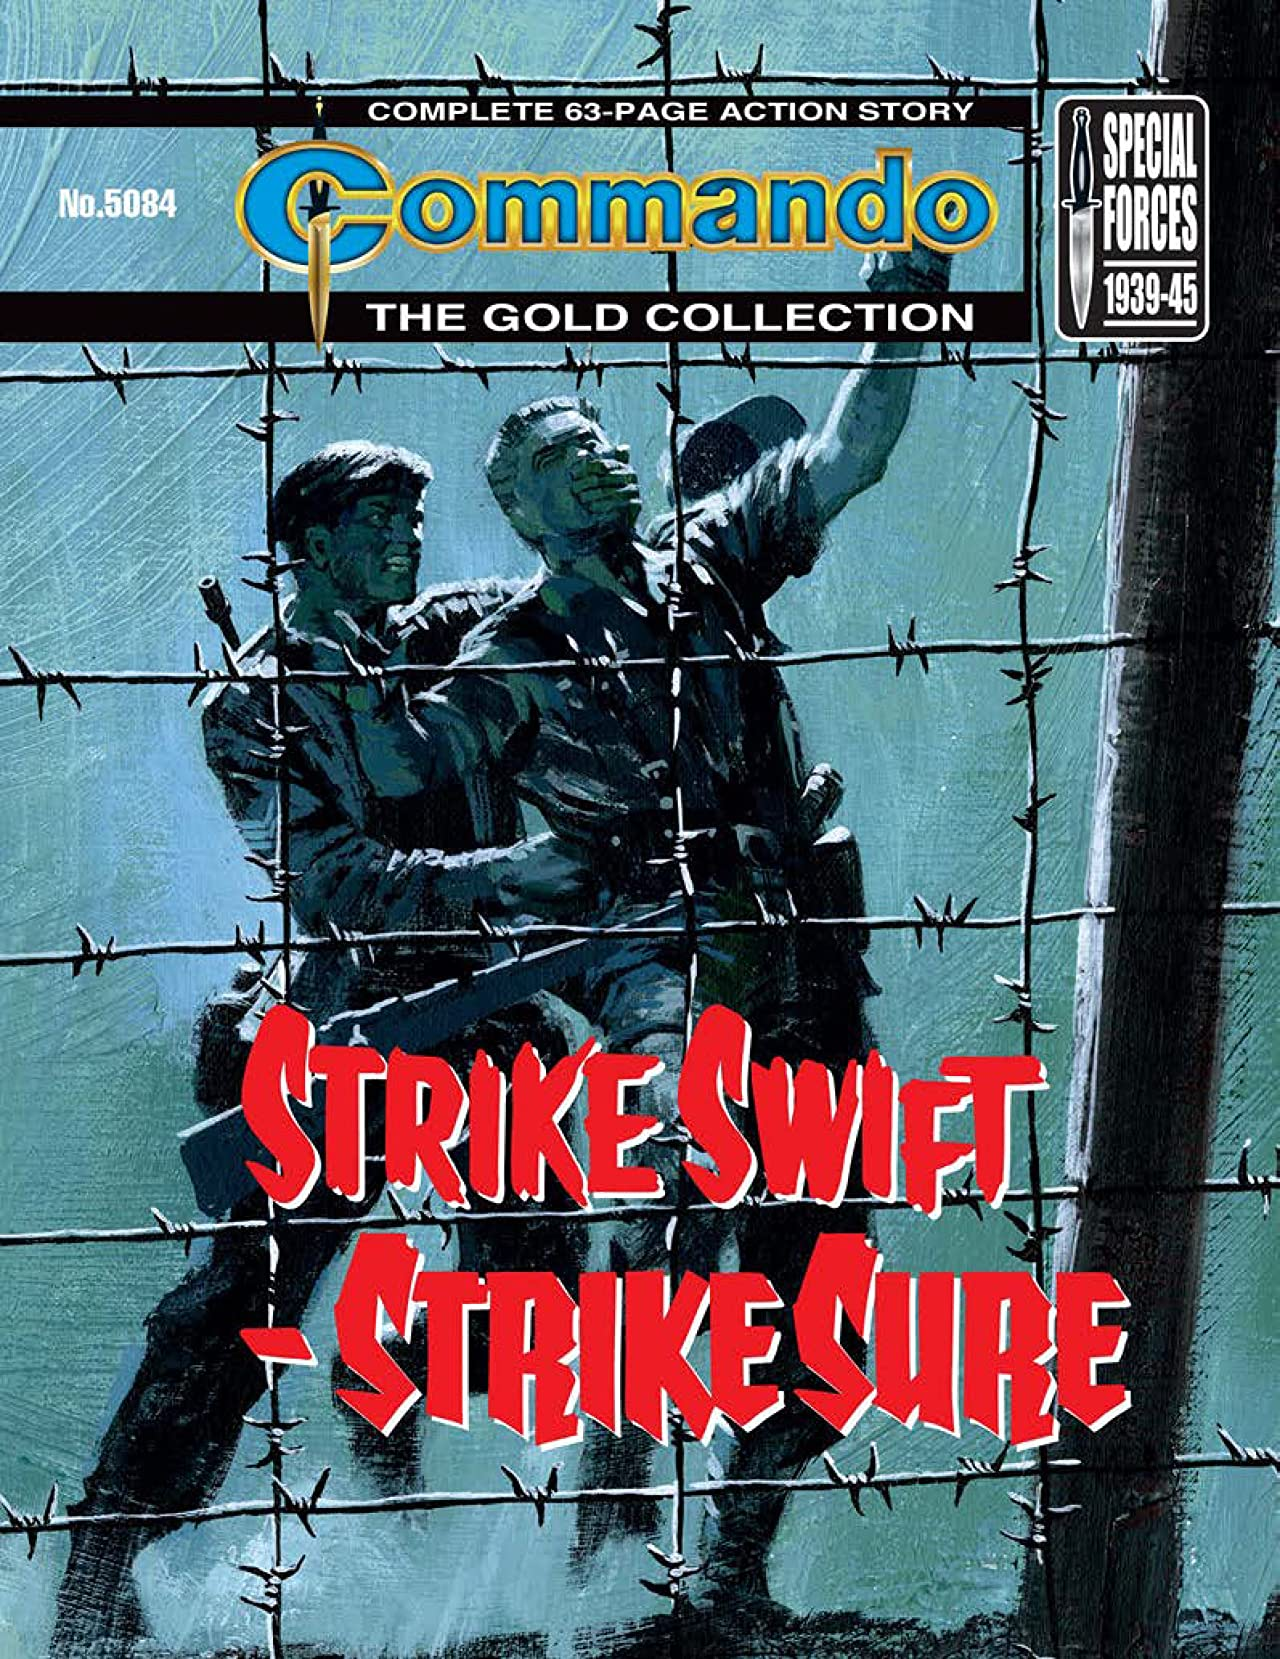 Commando #5084: Strike Swift - Strike Sure